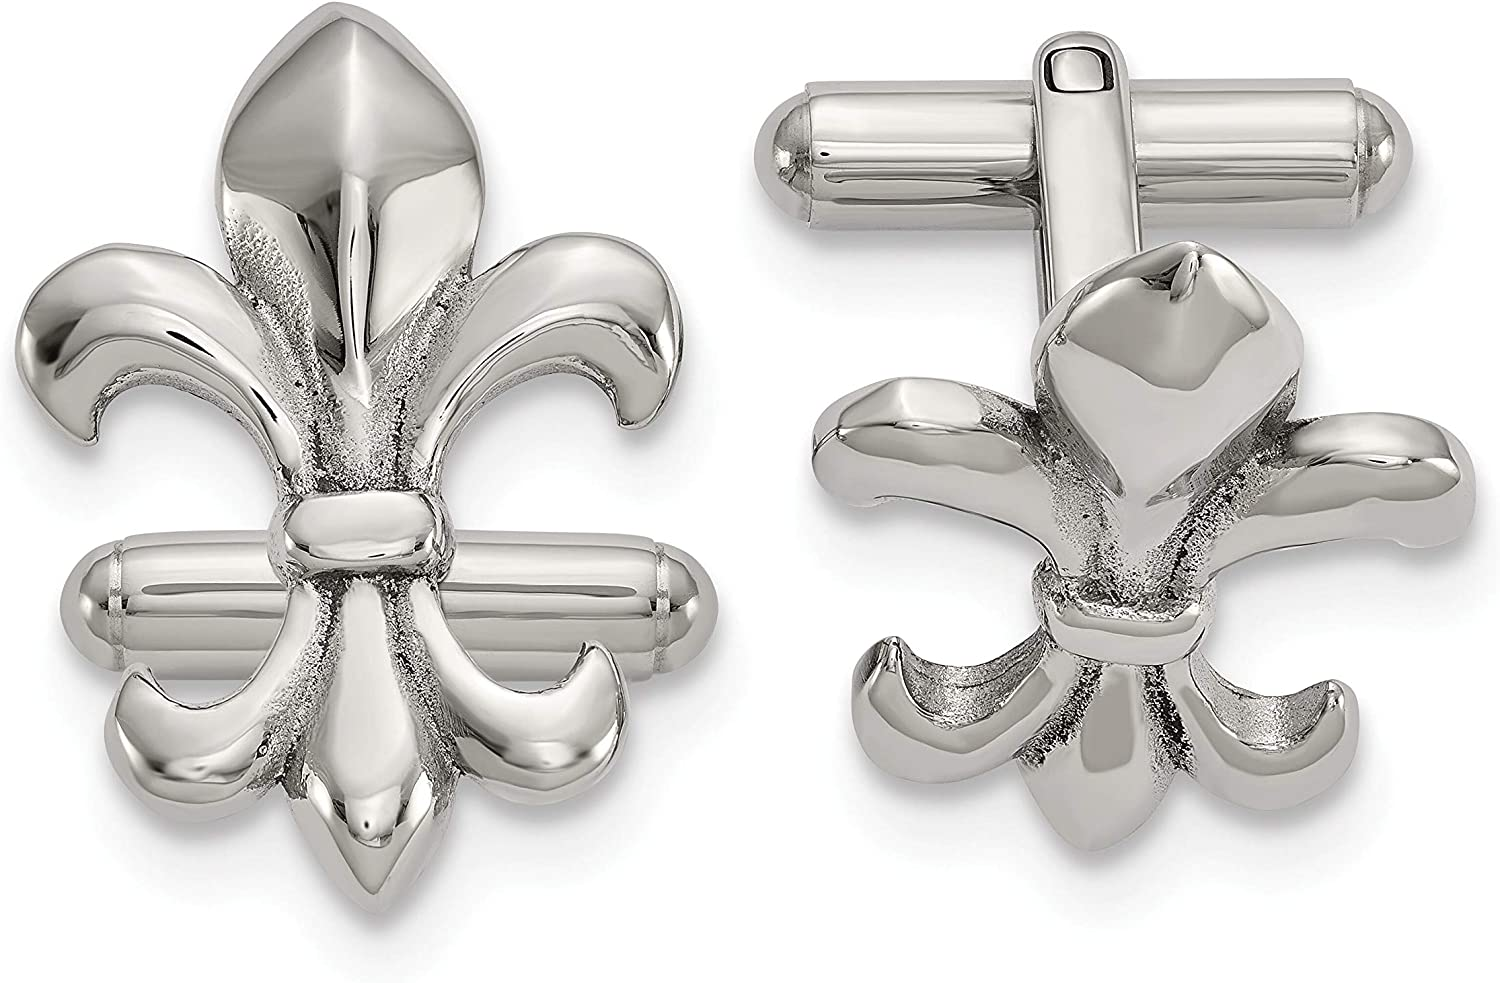 Stainless Steel Polished De Lis Cuff Links White Men's